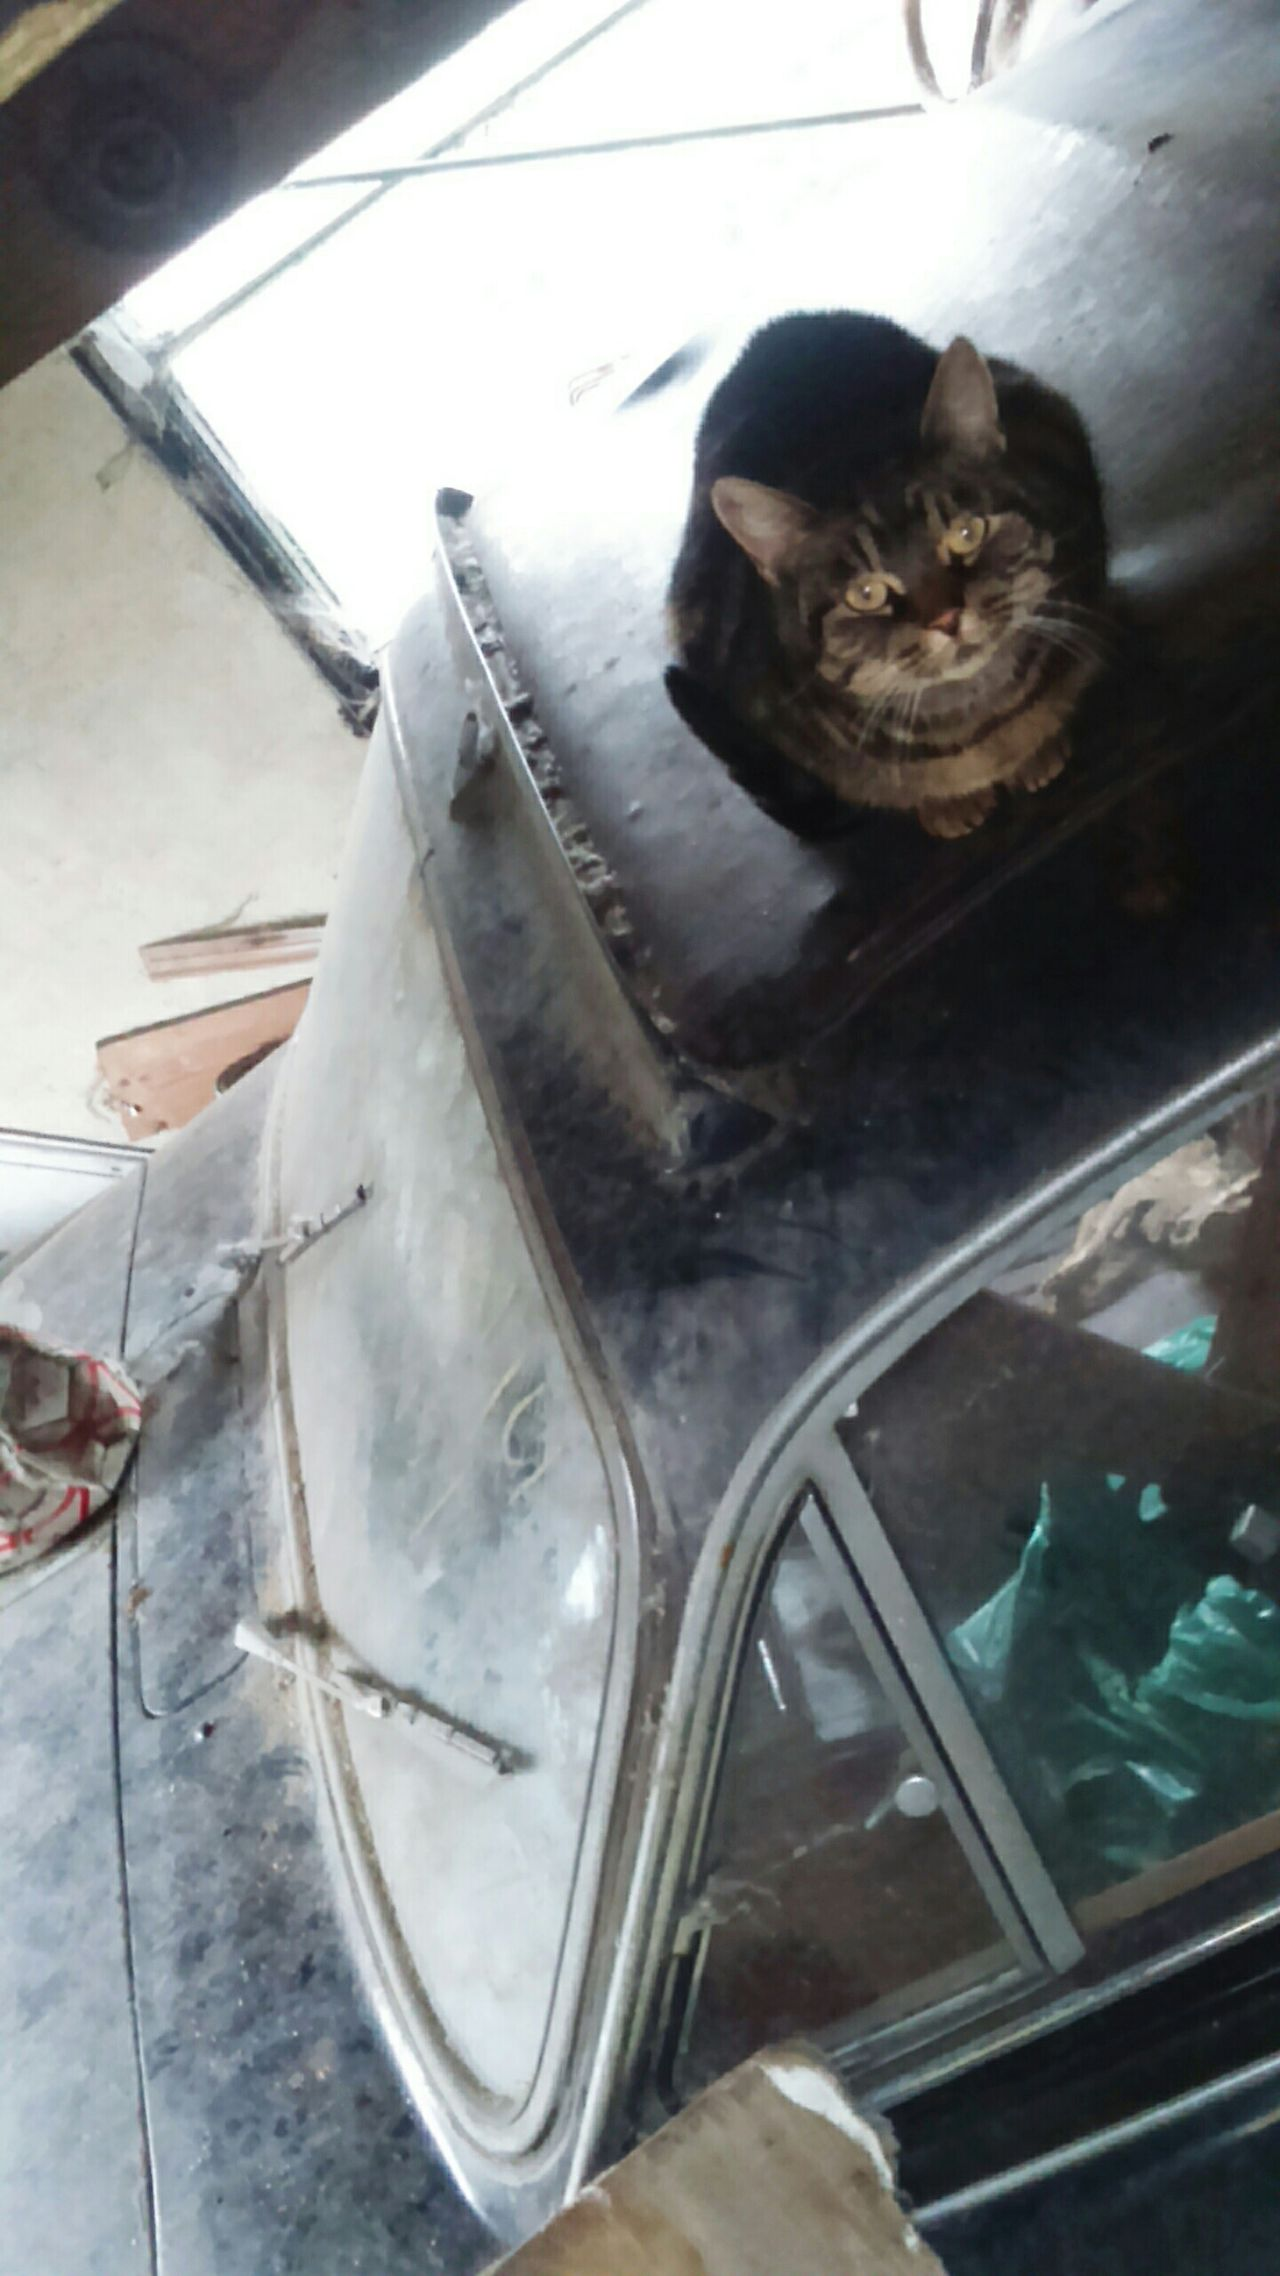 Cat Random Cat Moggy Cat On A Roof Car Cars Vintage Vintage Car Vintage CarsOld Car Old CarsRusty Car Old Rusty Car Dusty Garage Auto Rusty Autos Rusty Metal Rusted In The Garage Classic Car Classic Cars Vehicle Vehicles Cats In Random Places One Cat